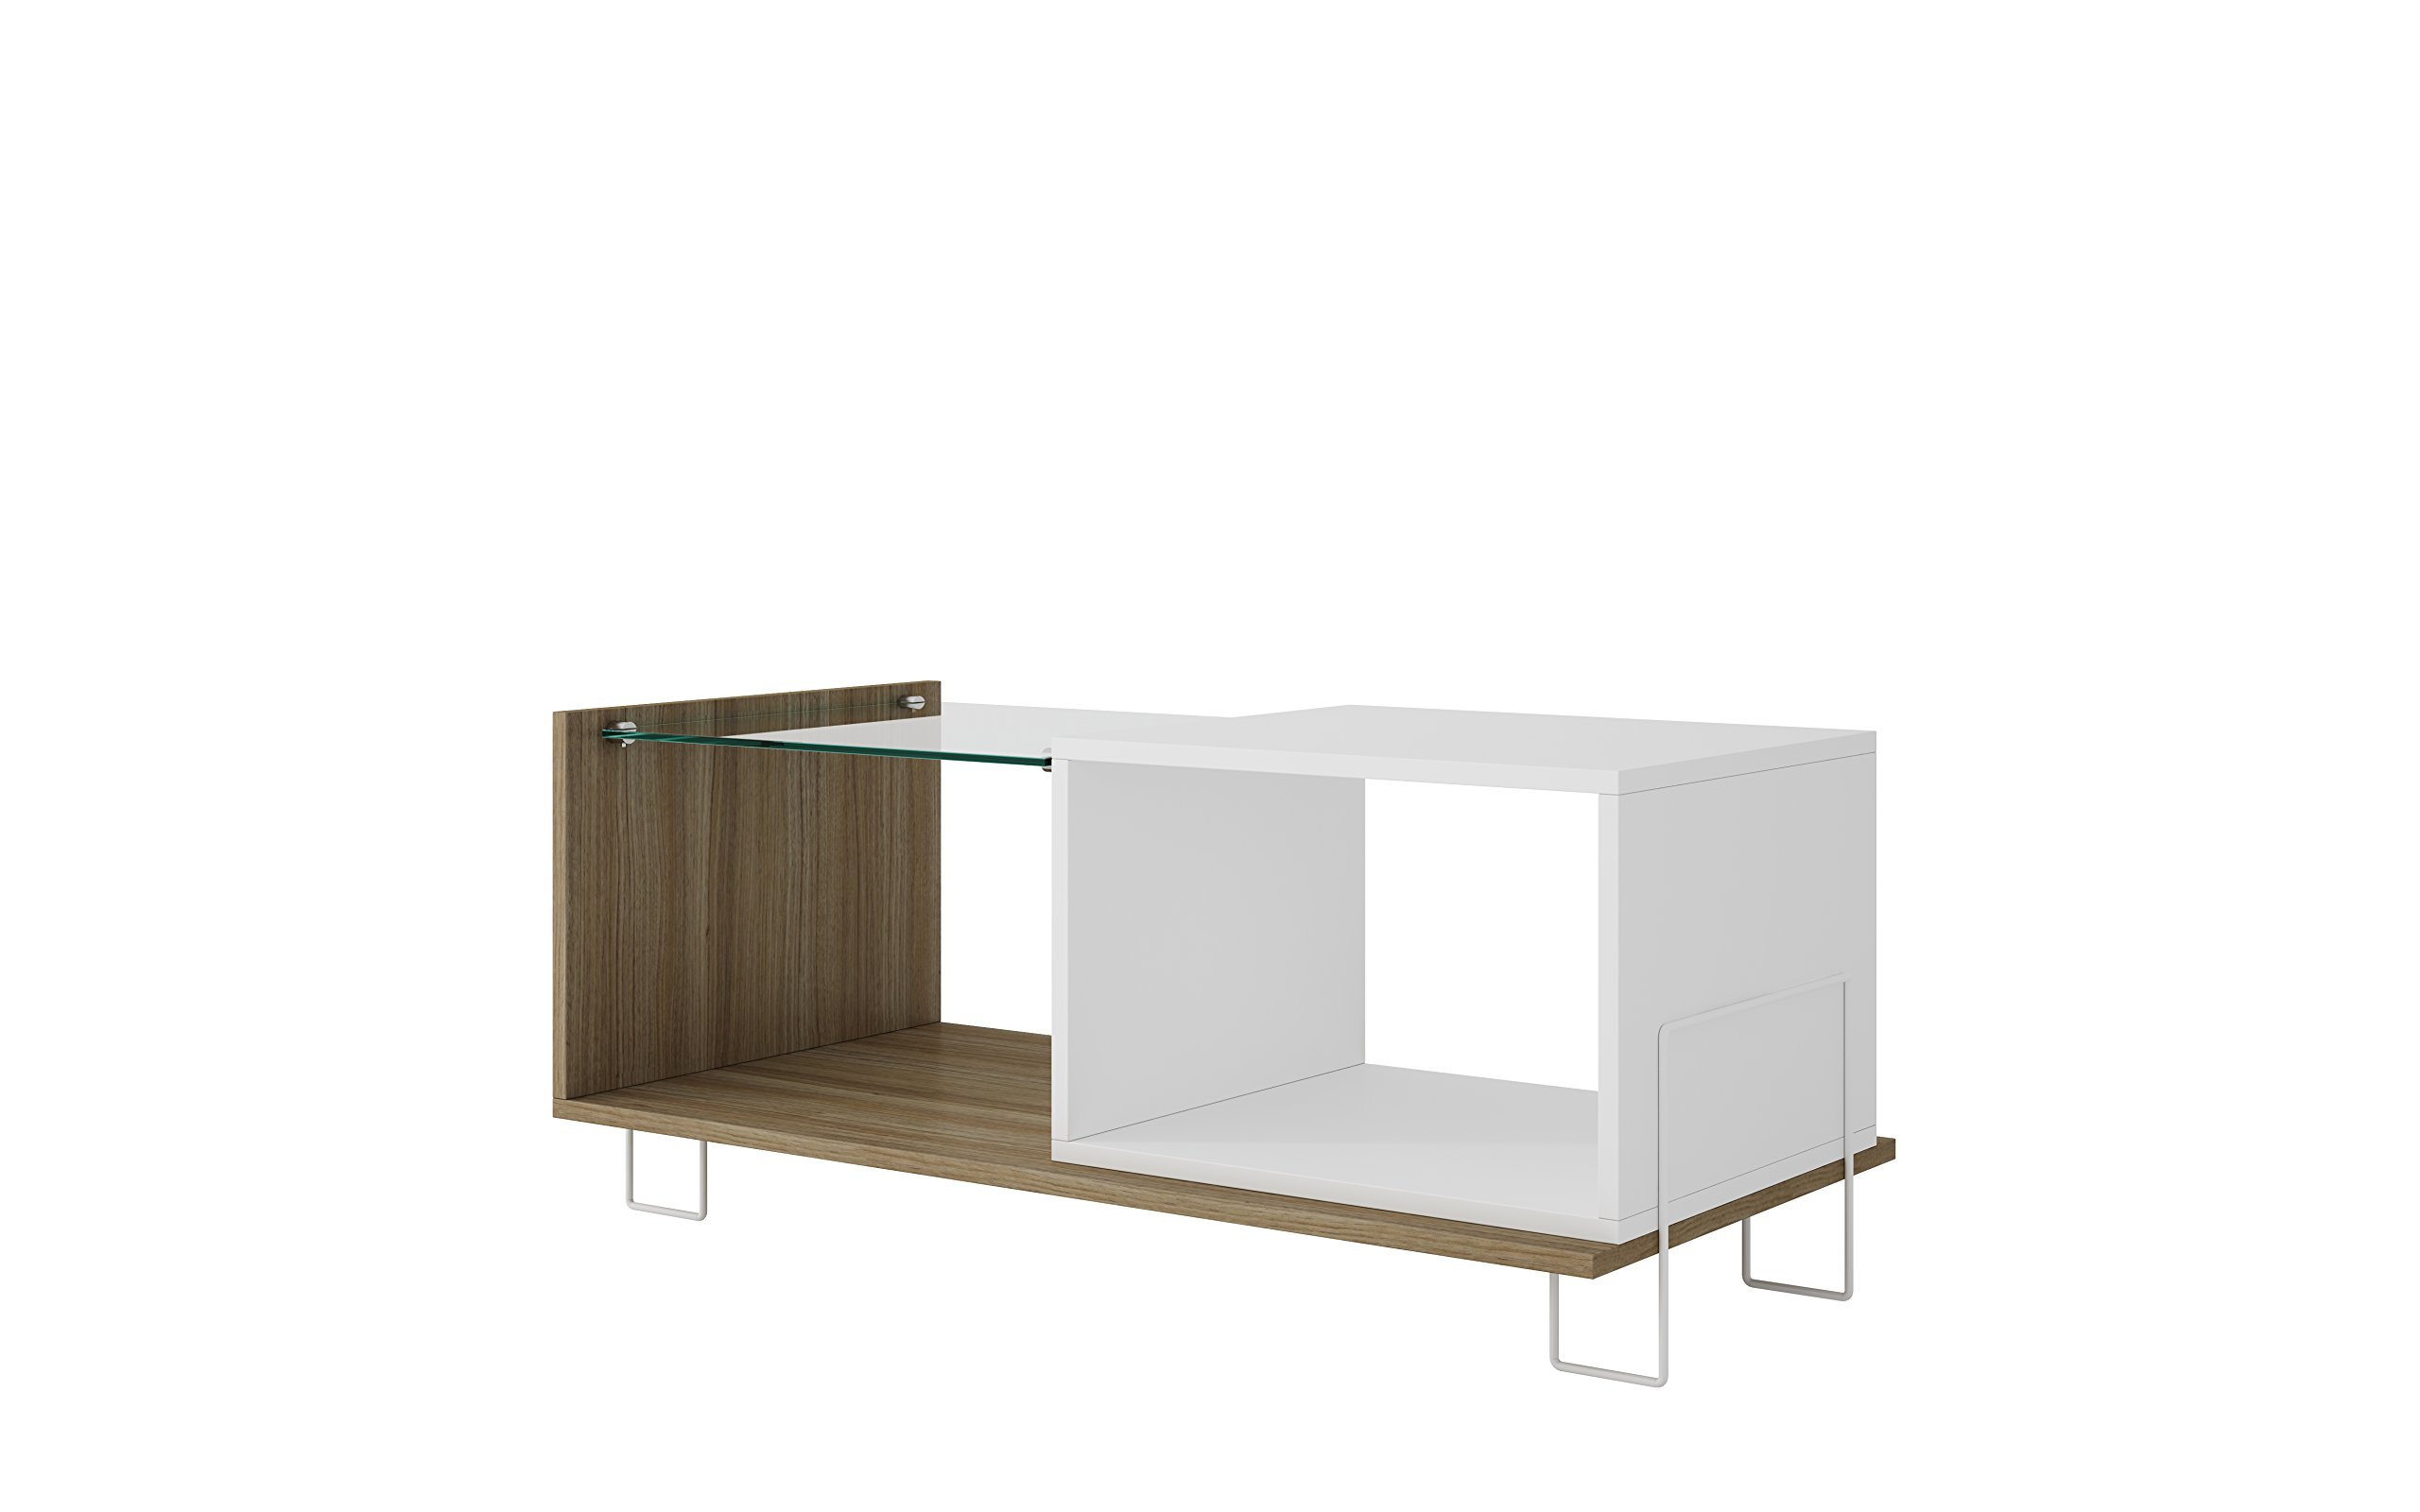 """Manhattan Comfort Boden Collection Contemporary TV Stand With Tempered Glass Top, Two Open Cubby Spaces, White/Glass/Wood - The Boden Collection Introduces a Beautifully Crafted Glass Top TV Stand With Fantastic Dimensions of 17.52"""" x 15.31"""" x 17.52"""" and Weighs Only 30.2 lbs., Making it Easy to Place and Use Within Your Home. This TV Stand Has Been Designed to Comfortably Hold a TV of Up to 32"""". You Cannot Go Wrong With a TV Stand Like This, The Color is Complimentary and the Dimensions are Ideal For Setting Up Anywhere in Your Home Reliable Craftsmanship: Crafted From Quality MDF, This TV Stand Has Been Built to Last. Designed With a Tempered Glass Shelf and Metal Base Legs, it is Without a Doubt That This TV Stand Has Been Created to be Durable and Long Lasting For Several Years to Come. Compliment Your Home With the Attractive Appeal of Two Open Shelves and a Cubby Space That Has Room For All Your Entertainment Needs Contemporary Design: This TV Stand Has a Unique Design With a Creative Touch. Crafted and Designed From The Finest Craftsmen at Manhattan Comfort, it is Without a Doubt That This TV Stand is Absolutely Perfect. Designed With Tempered Glass, There is an Attractive Appeal About the Way That This TV Stand Has Been Designed. The Color Tones Accent Any Room While Providing All That You Have Been Missing. You Cannot Go Wrong With This Addition to Your Home, So What Are You Waiting For? - tv-stands, living-room-furniture, living-room - 61Lrn9hquML -"""